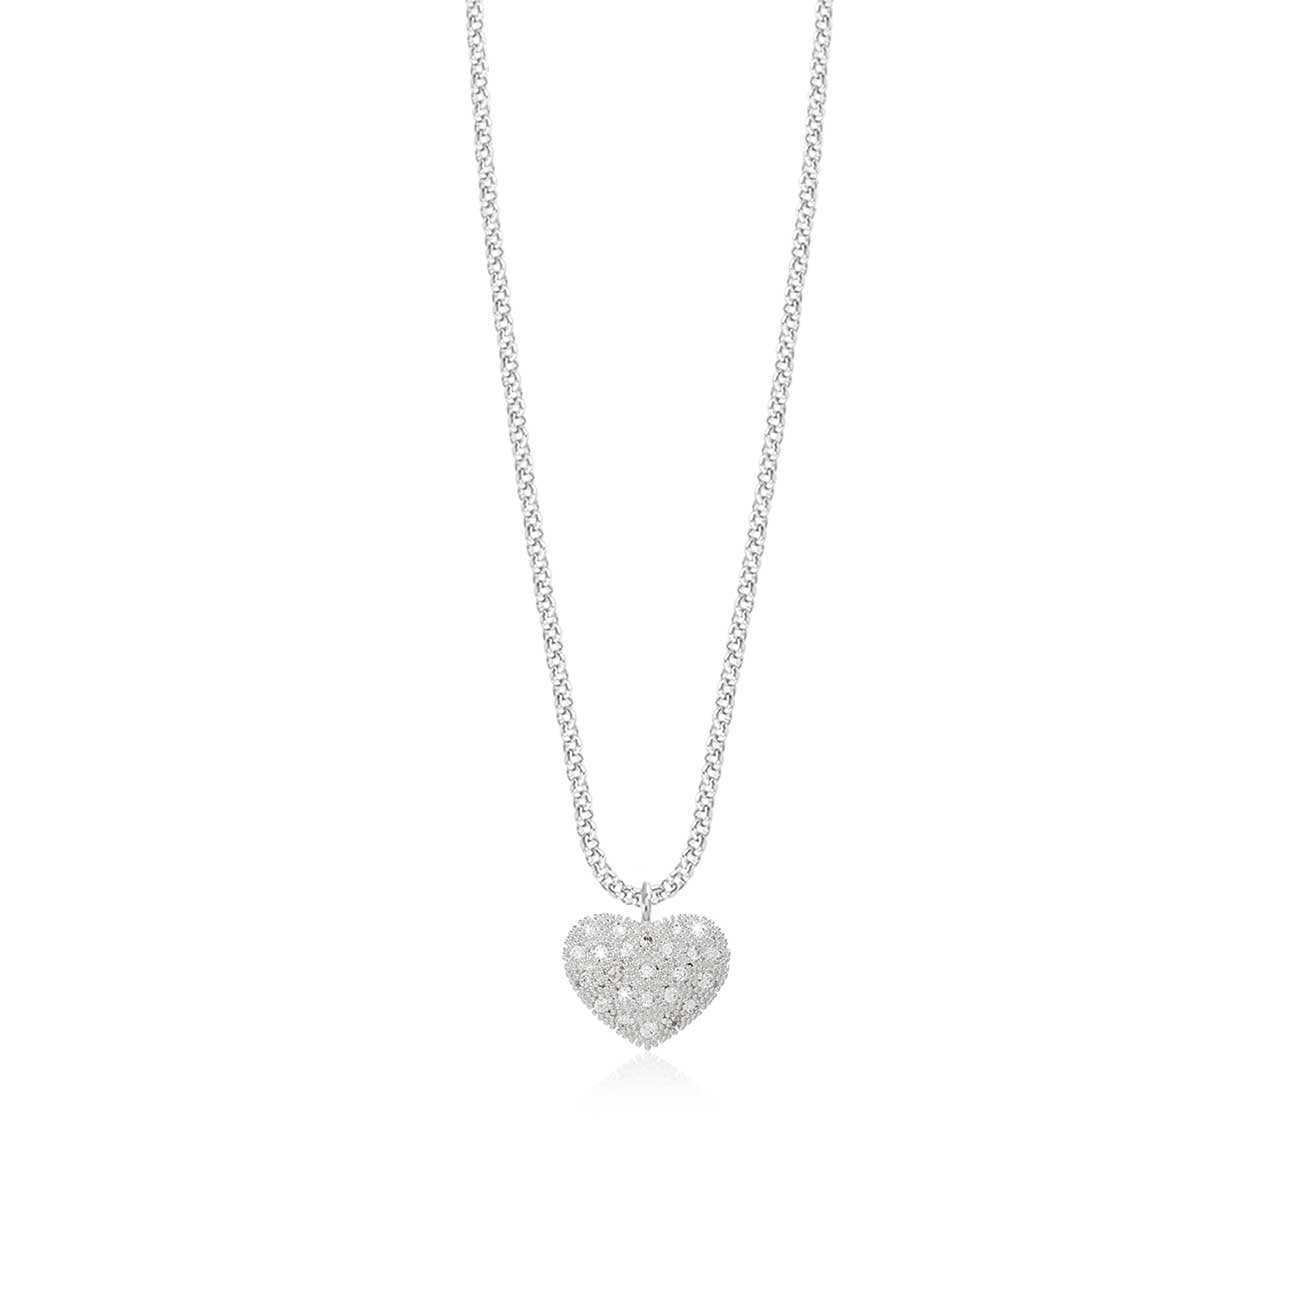 Joma Jewellery Bella Pave Heart Necklace | More Than Just A Gift | Authorised Joma Jewellery Stockist| More Than Just A Gift